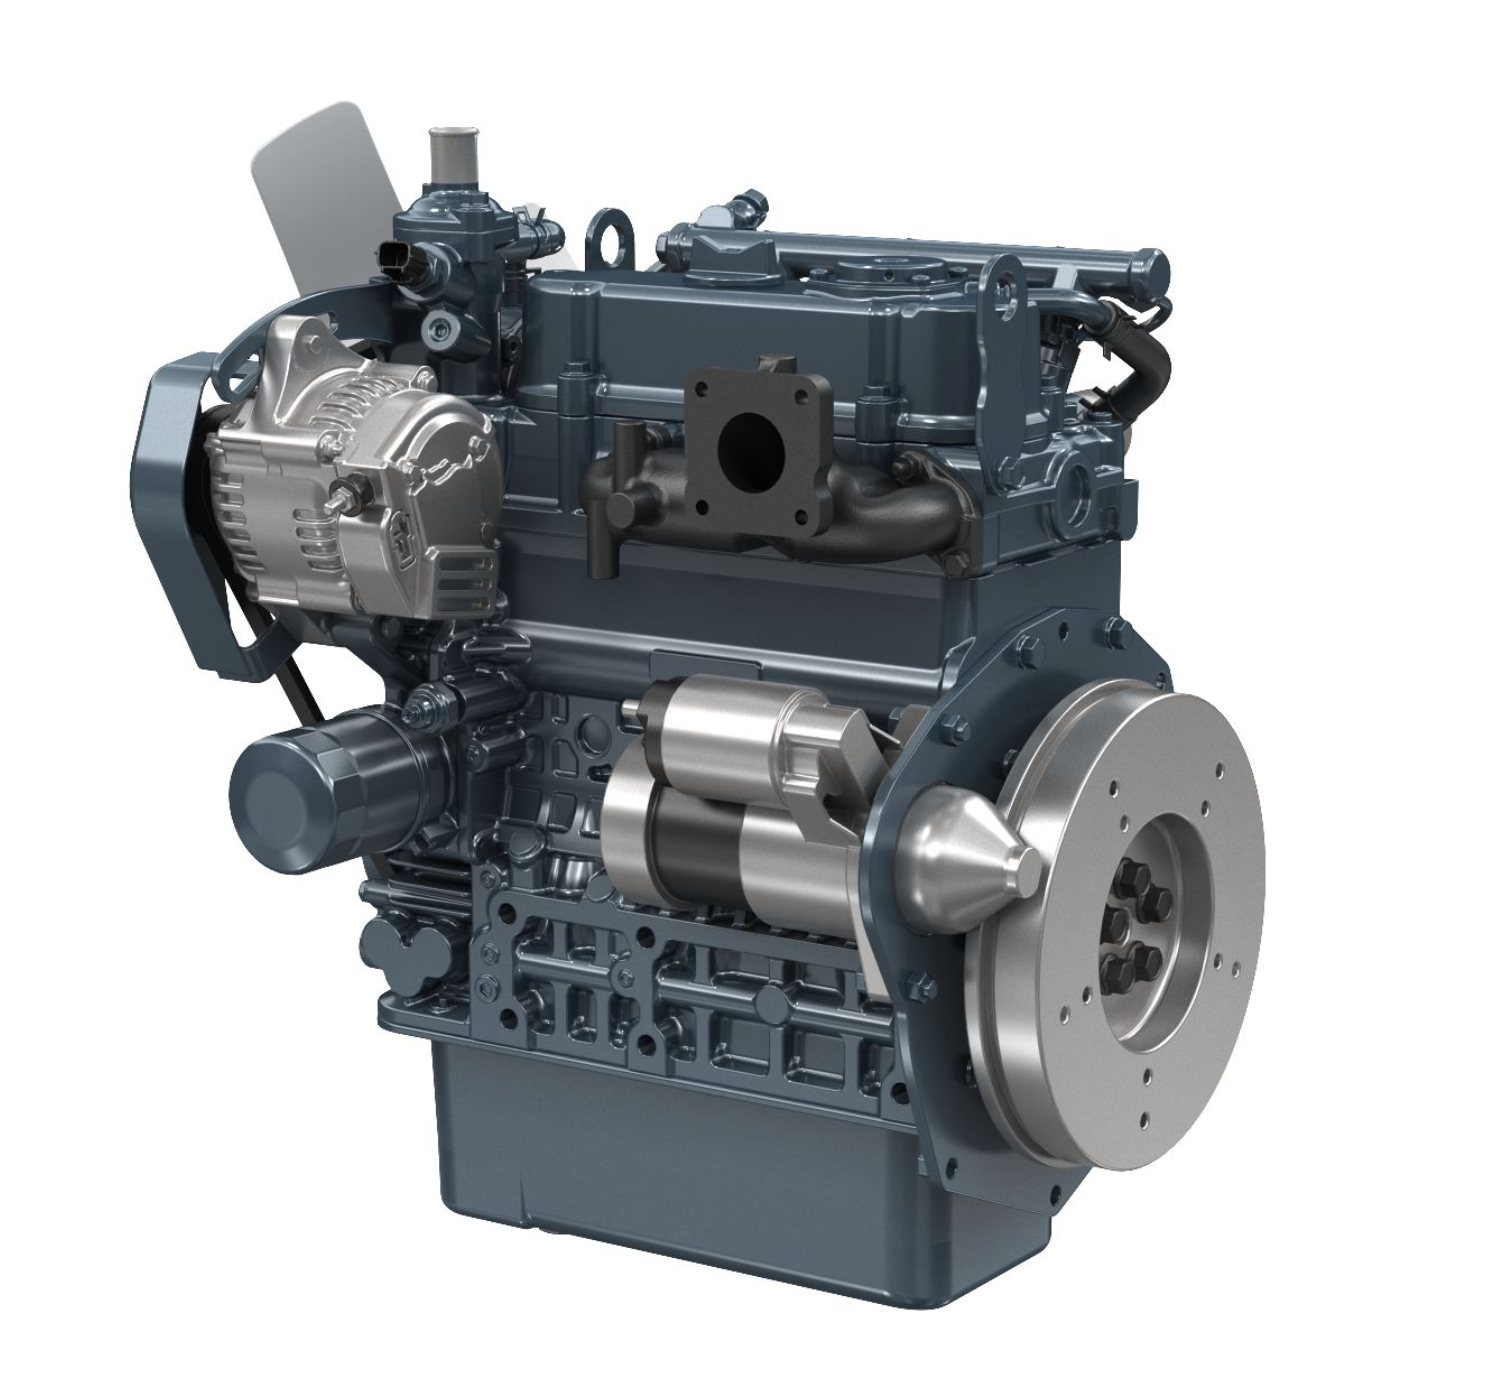 Kubota Business Unit Engine Europe announces new electrically-controlled D902-K